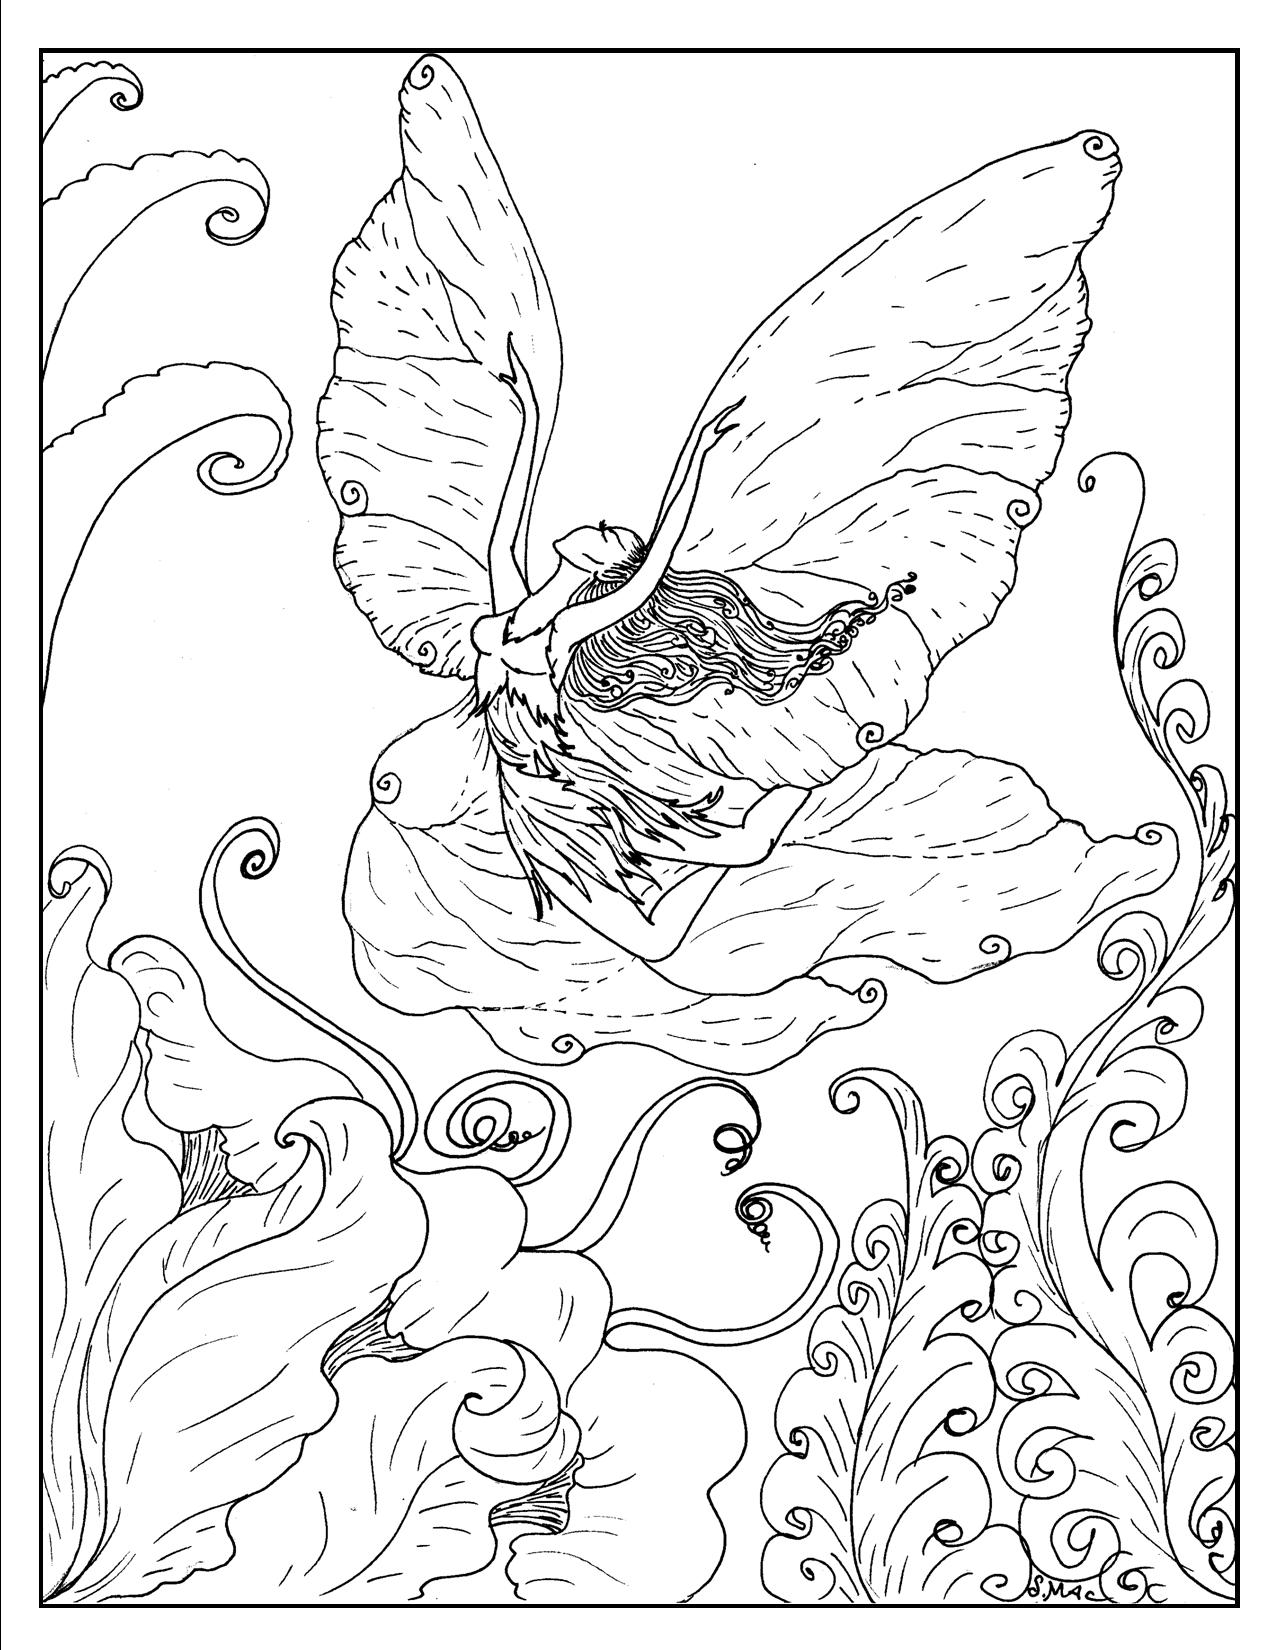 Free Printable Fantasy Coloring Pages for Kids Best Coloring